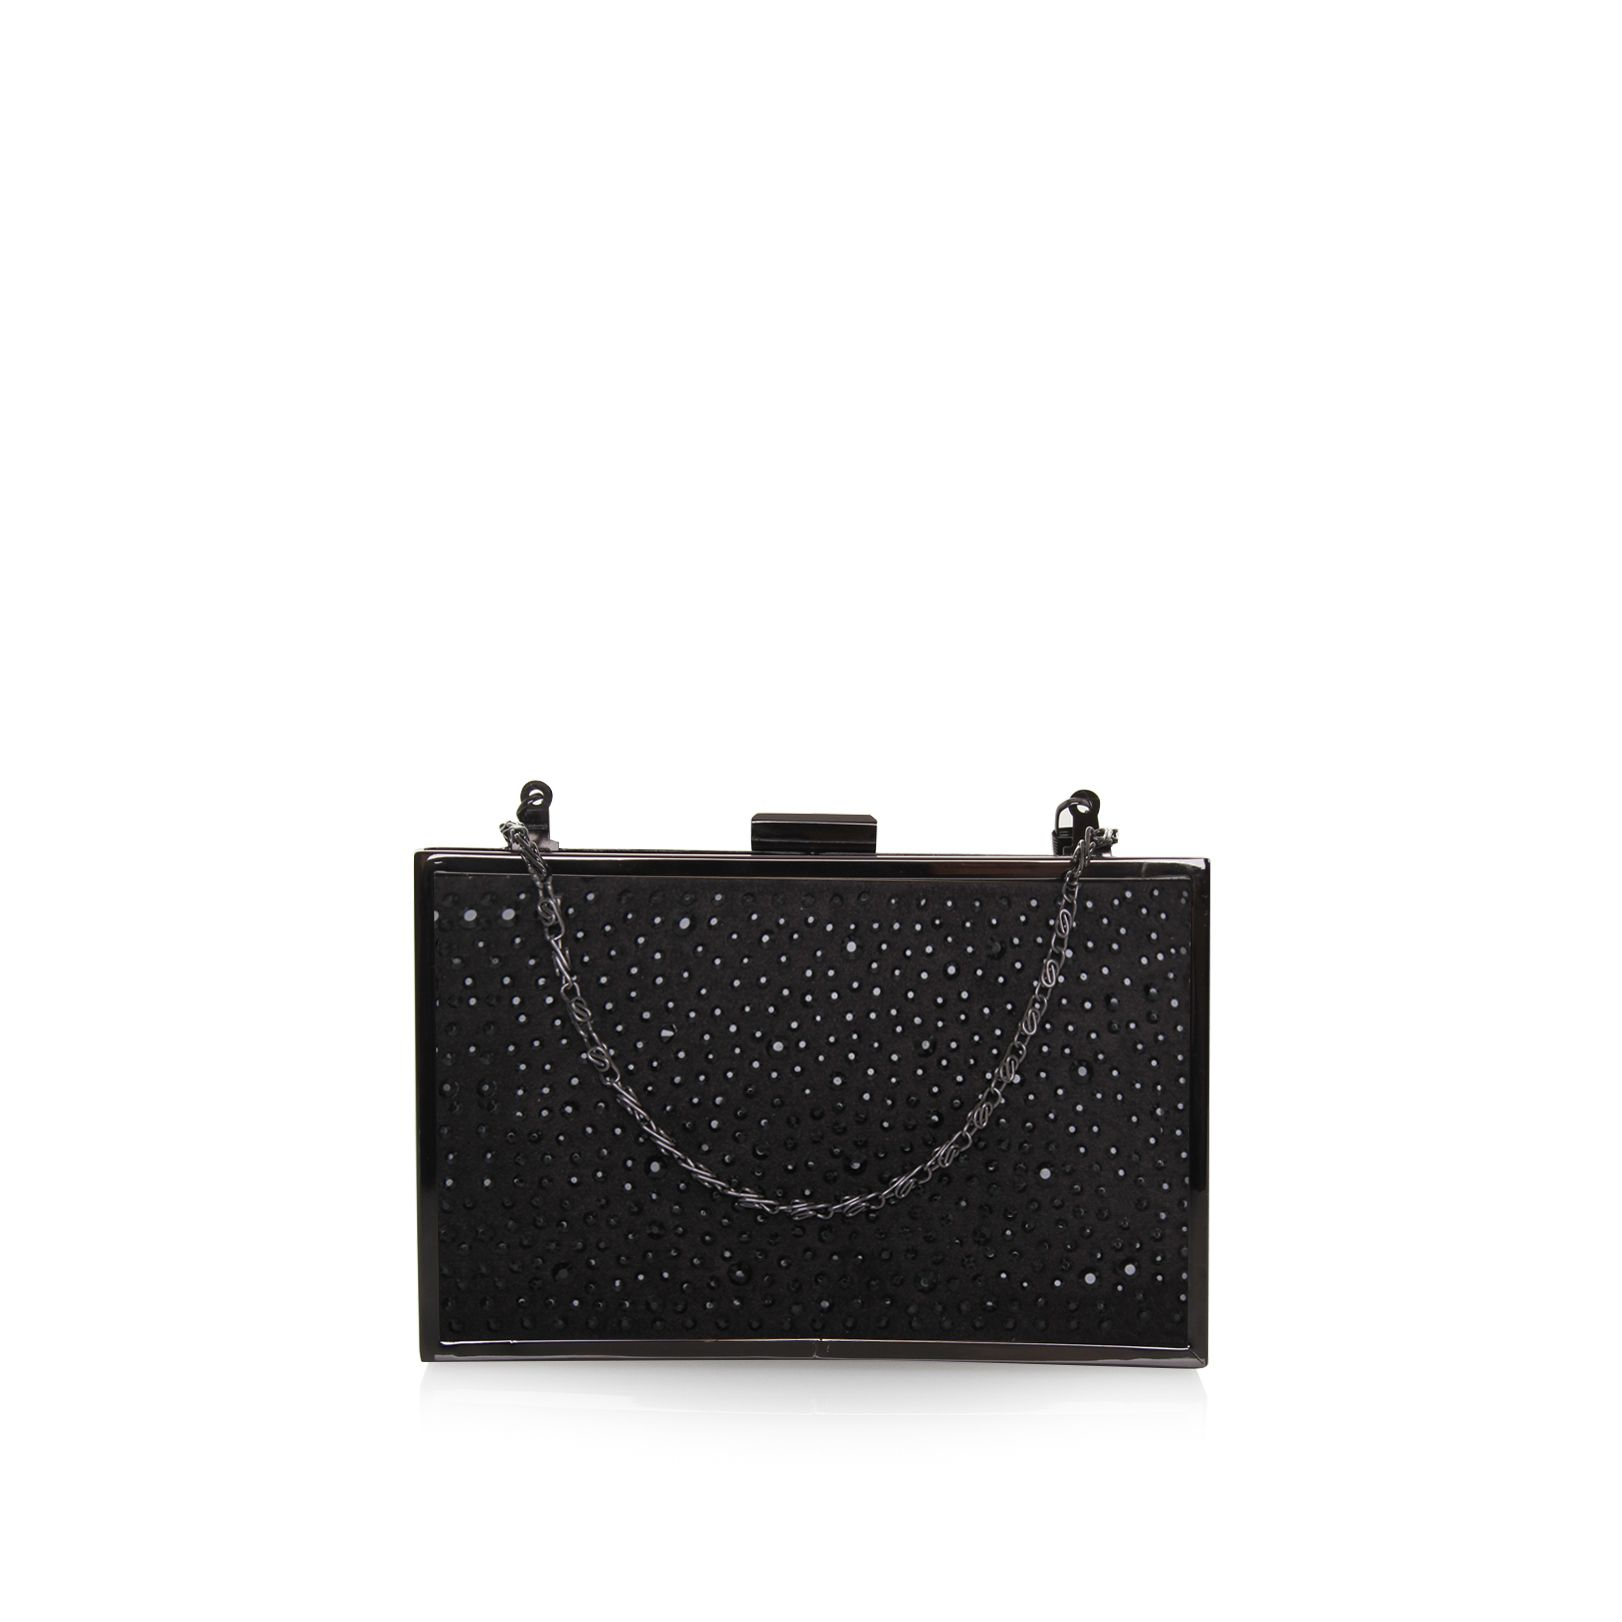 Daisy black bag